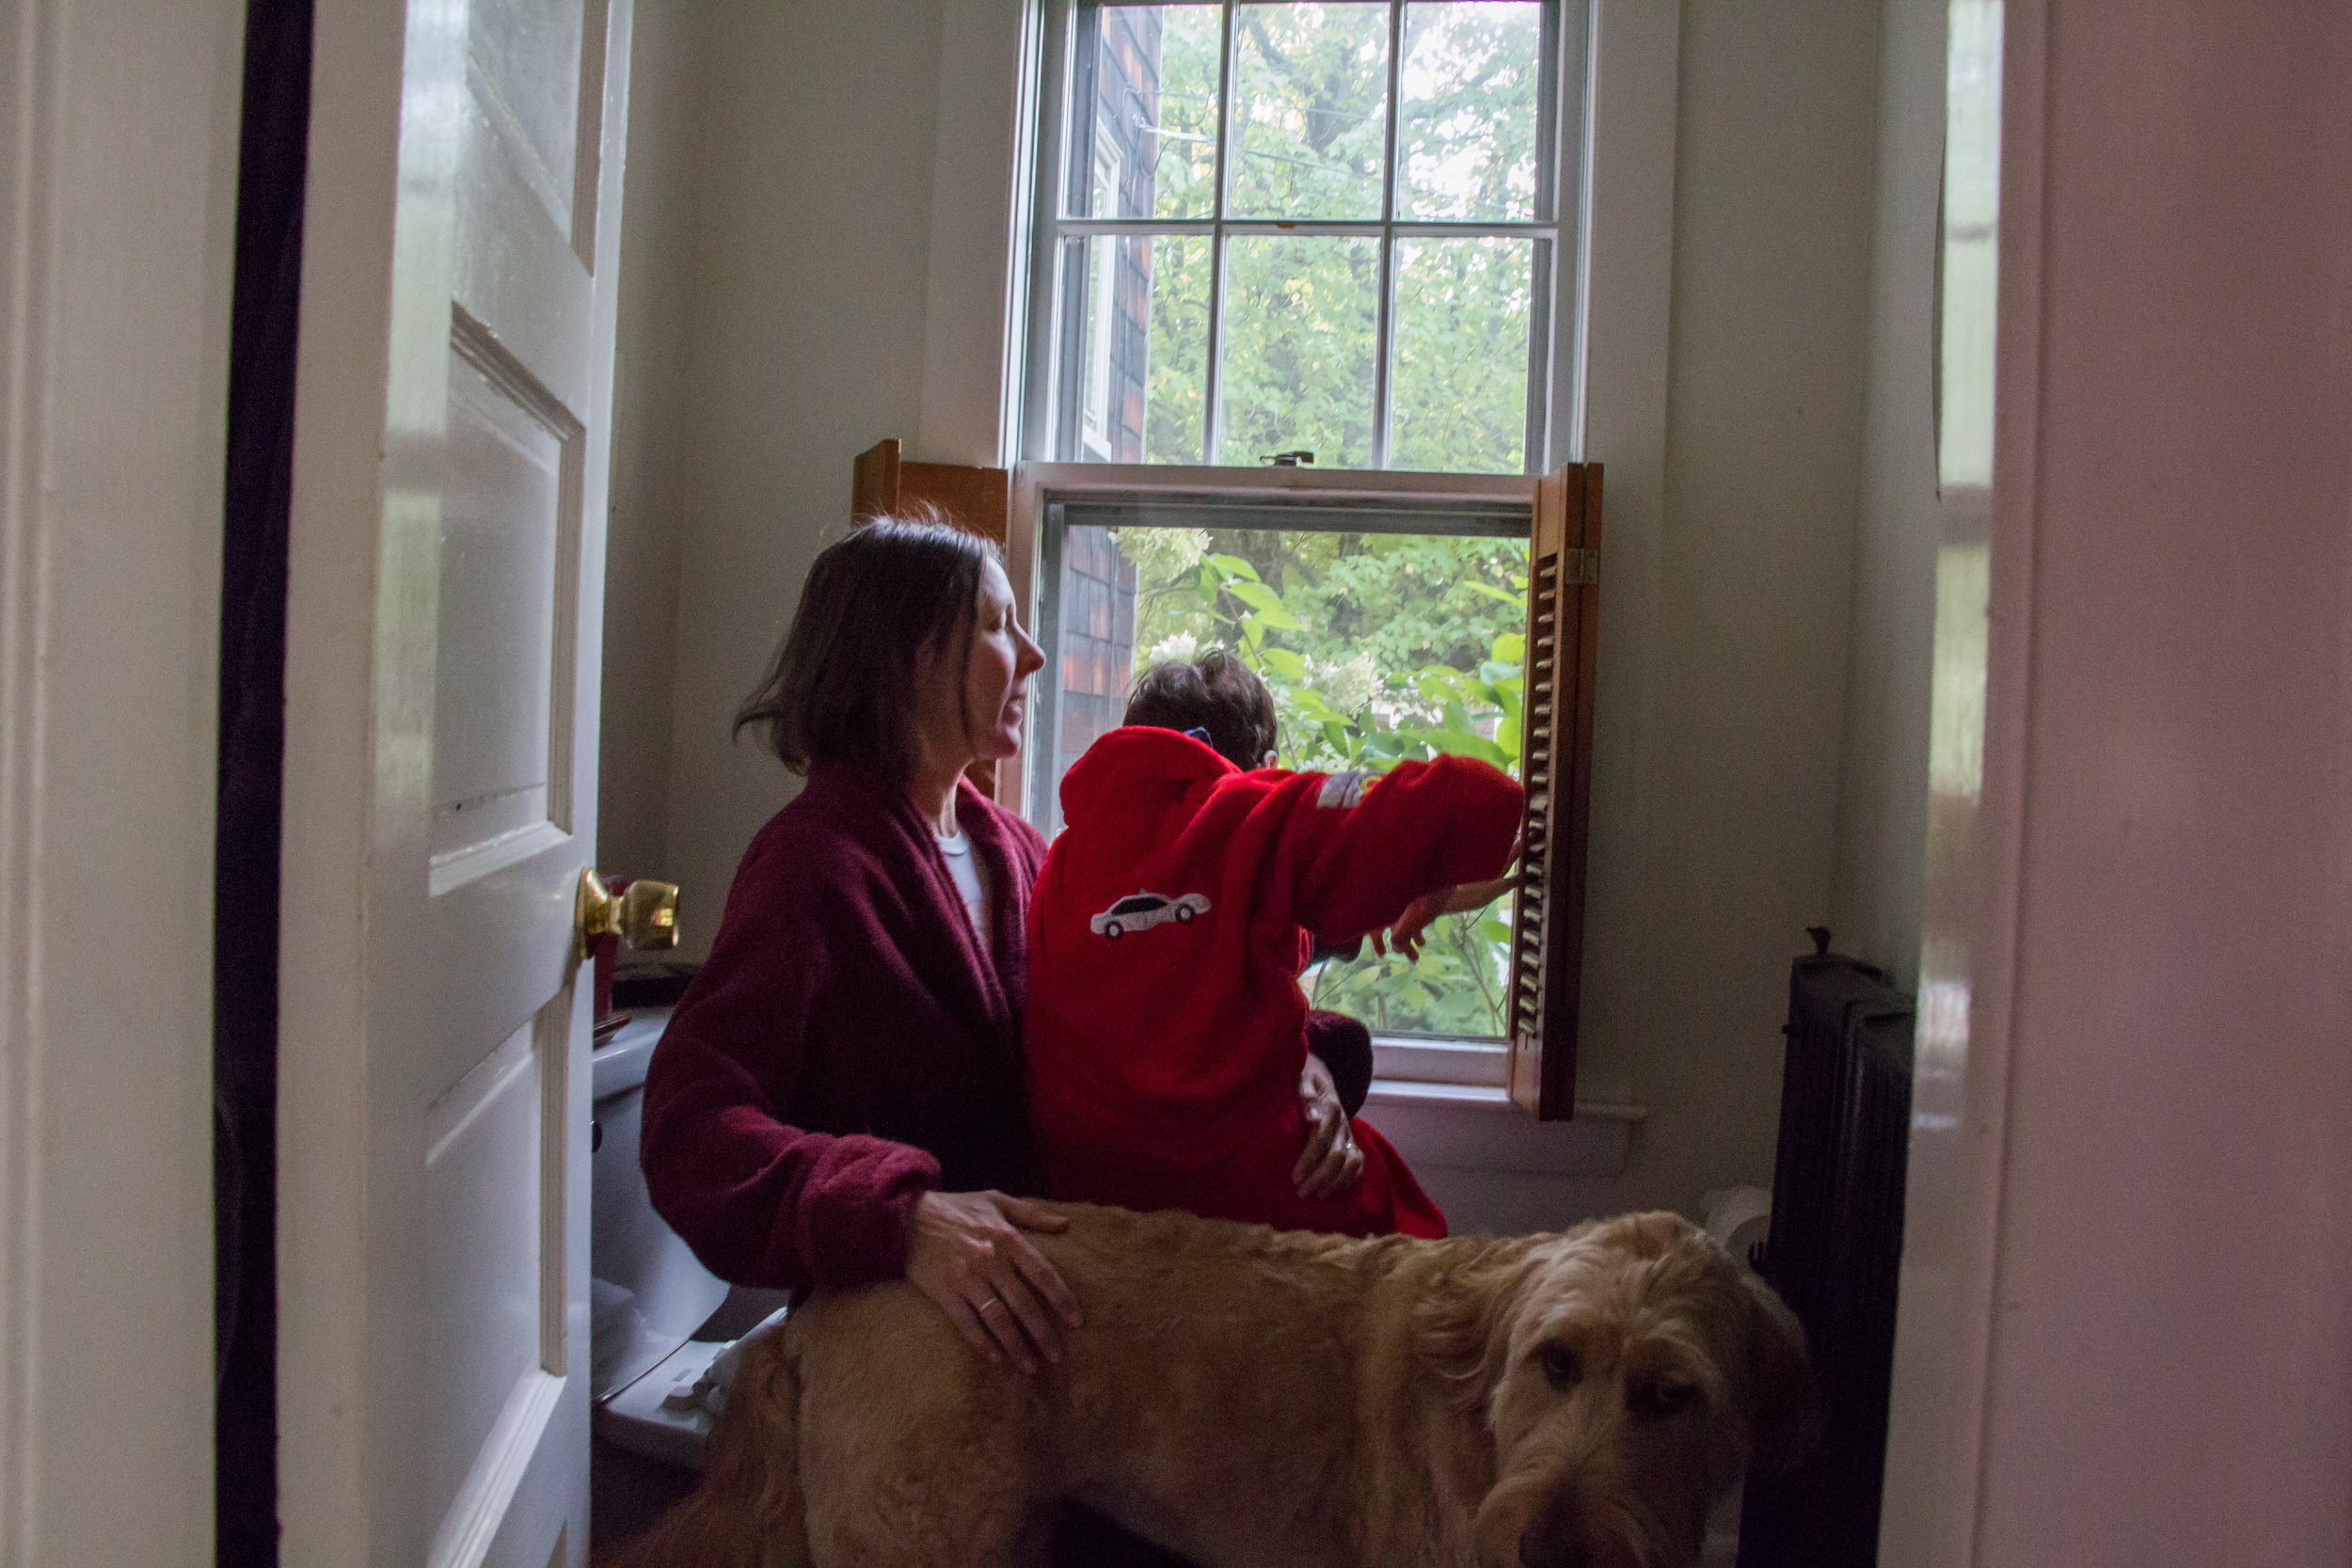 Christy Shake braces her son Calvin as he looks out the window of their home in Brunswick, Maine on September 30, 2017. Though Calvin can walk on his own now, his balance and vision are not good, and he can easily fall without Christy nearby to catch him. Much of their routine when he is home consists of her following him from room to room.